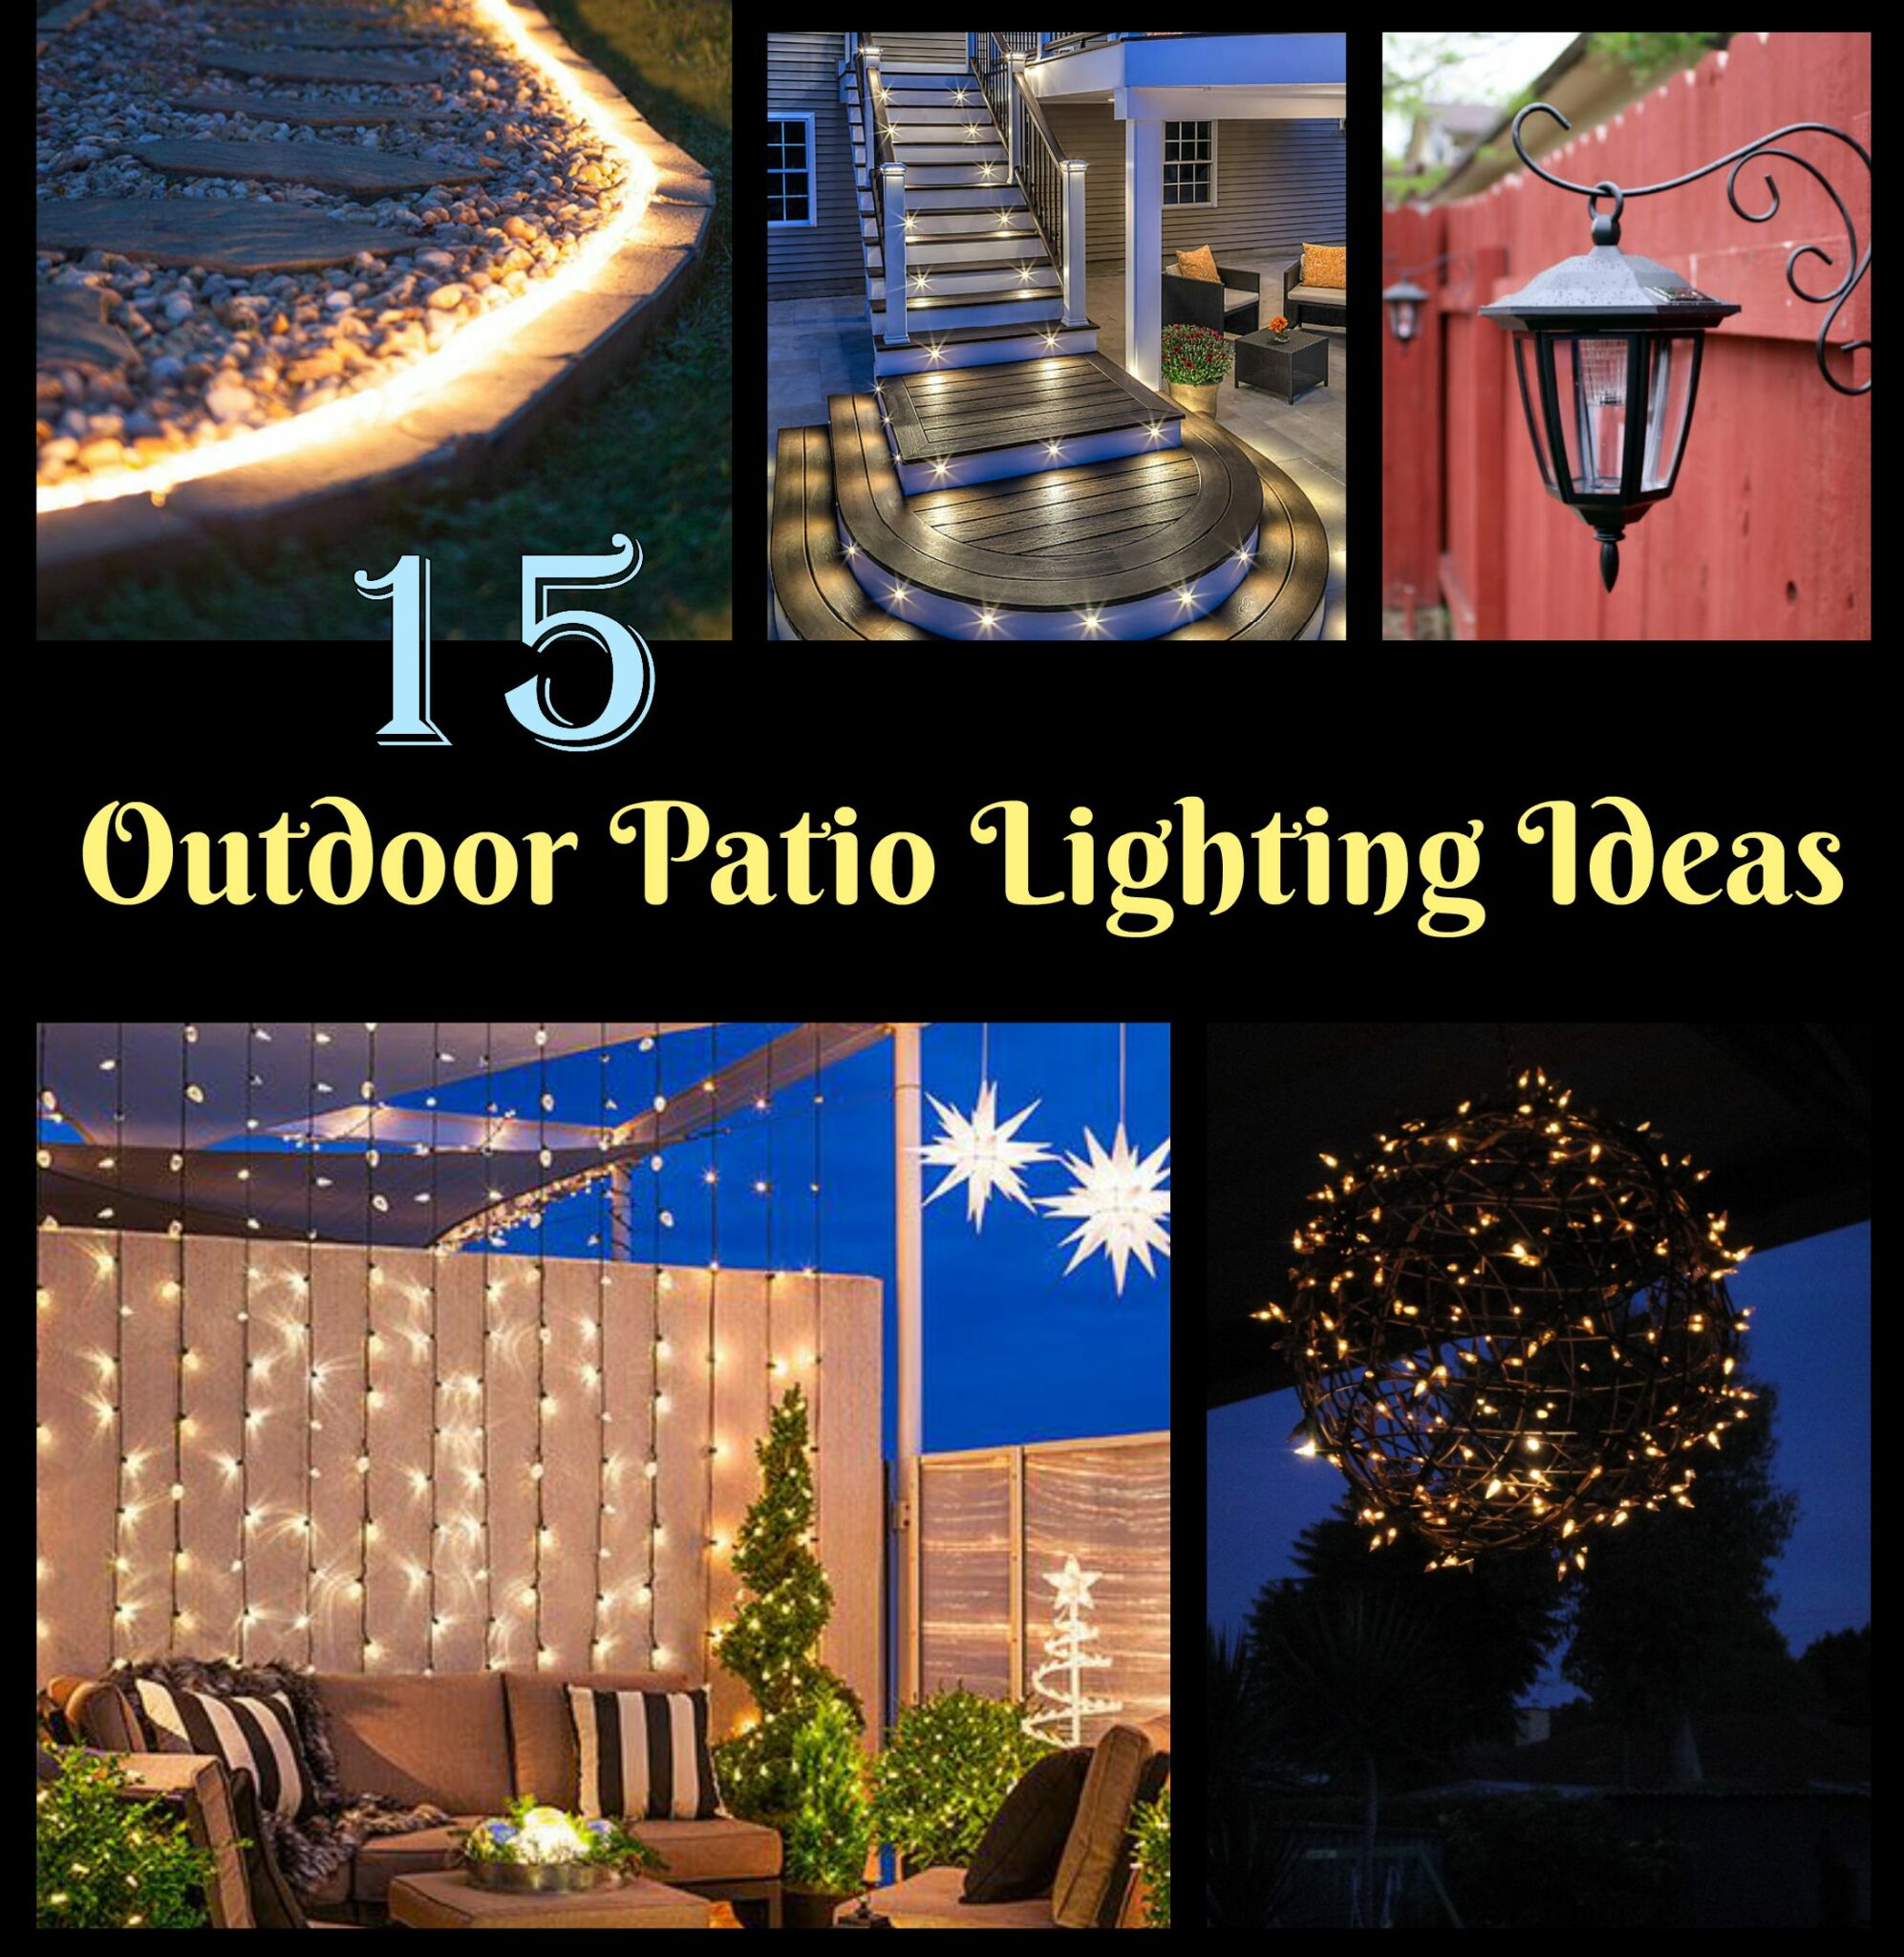 15 Outdoor Patio Lighting Ideas You'll Love!